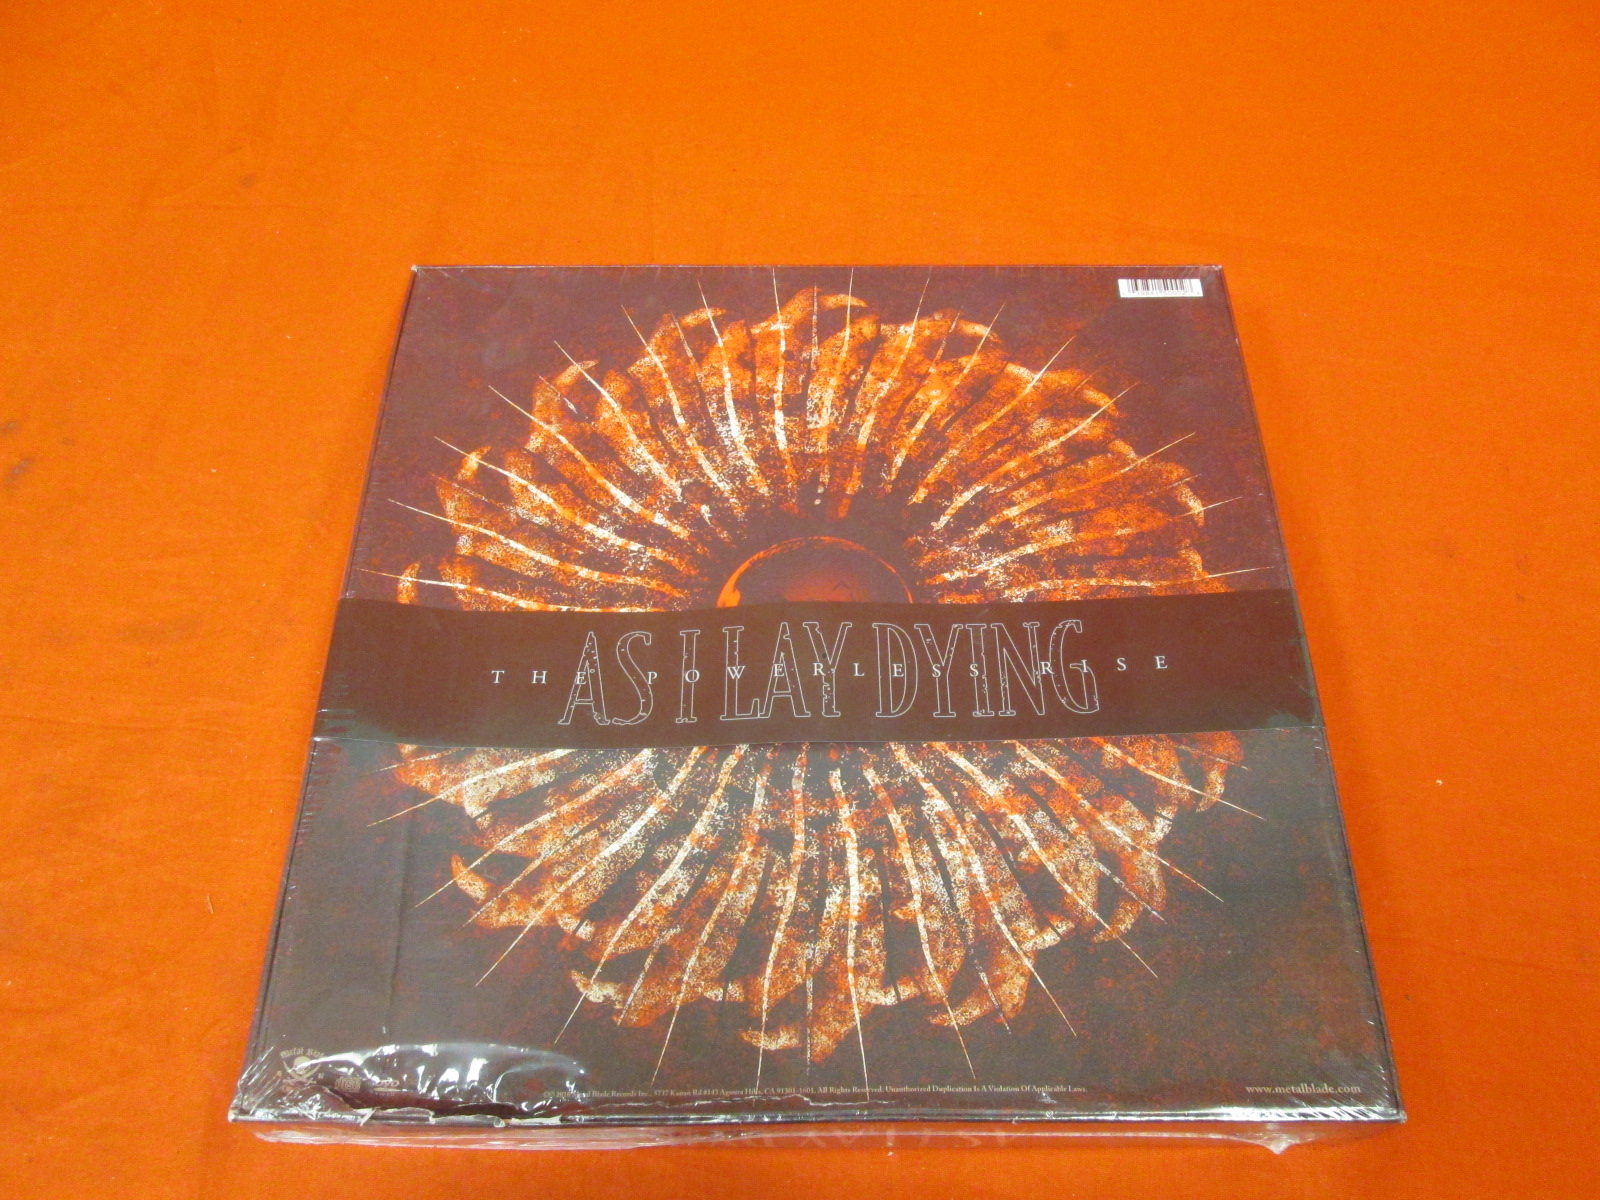 The Powerless Rise Super Deluxe Fan Box By As I Lay Dying On Audio CD